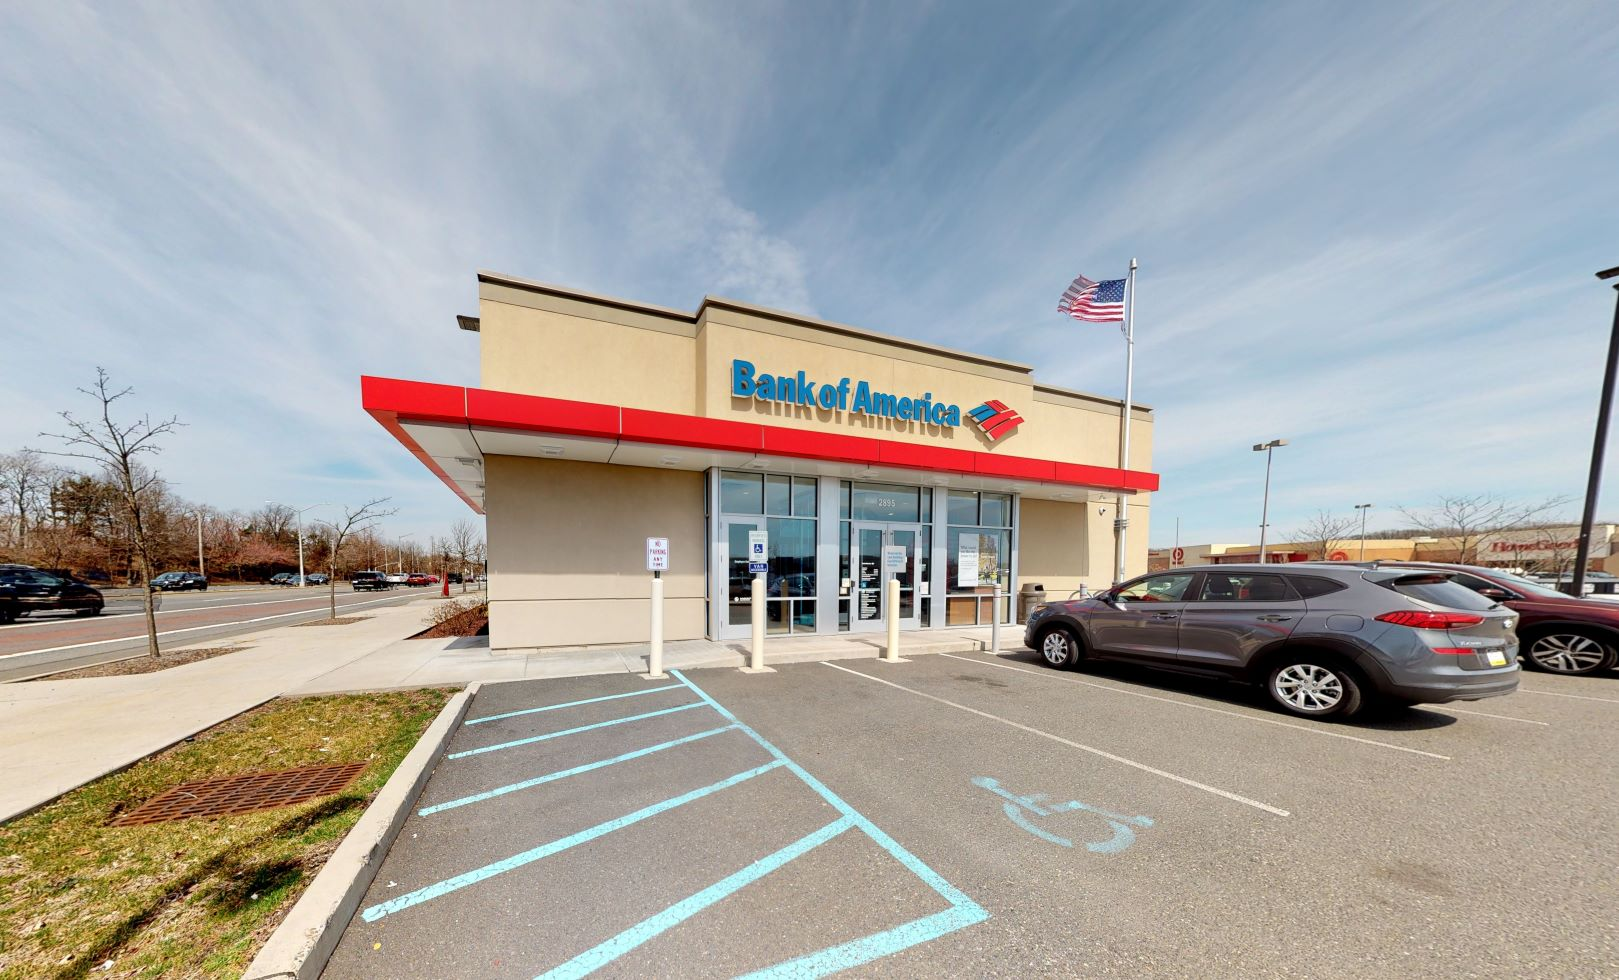 Bank of America financial center with drive-thru ATM   2895 Richmond Ave, Staten Island, NY 10314